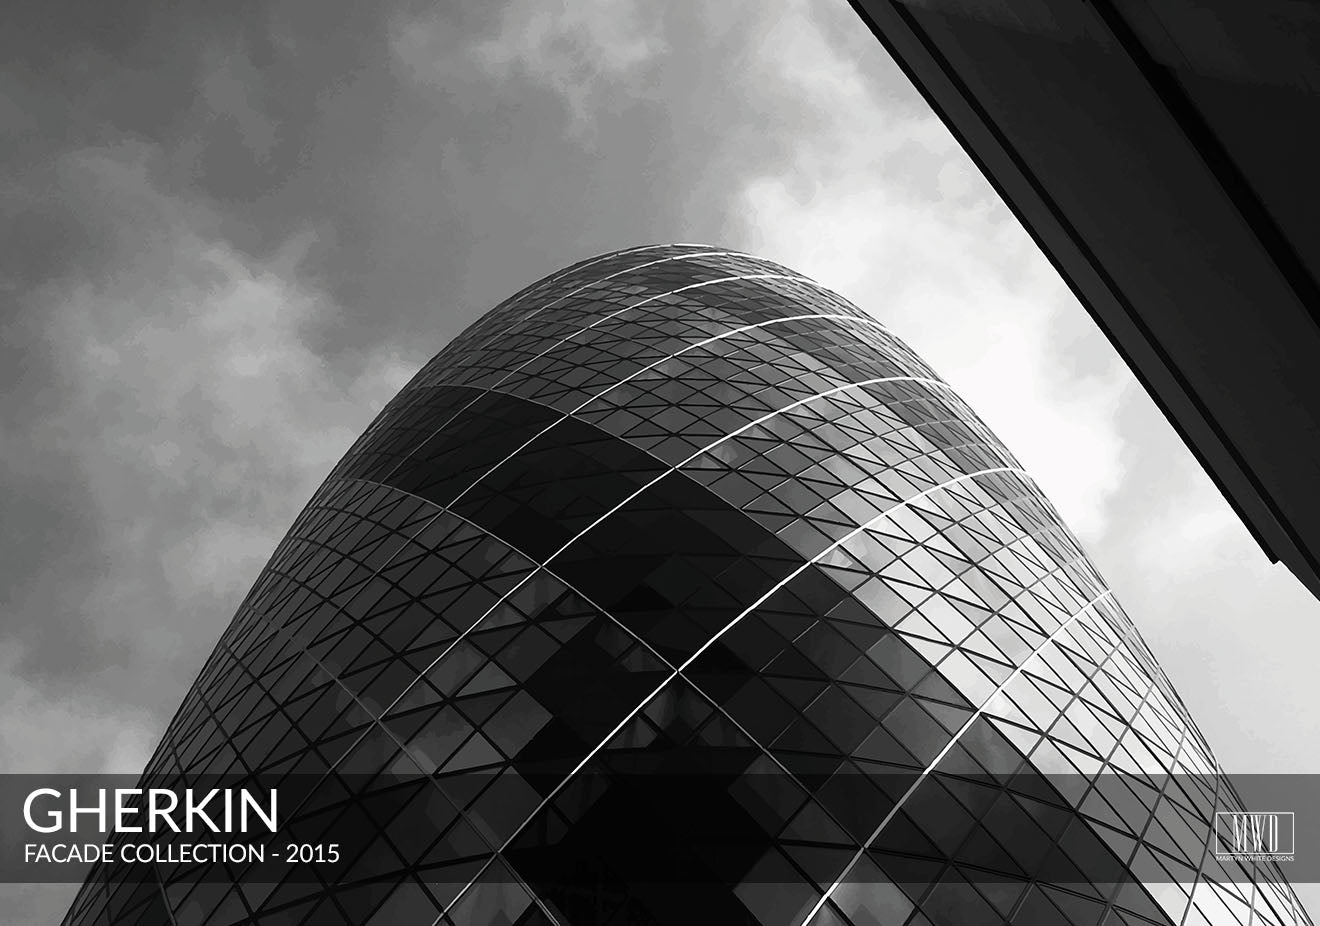 London Gherkin skyscraper photography